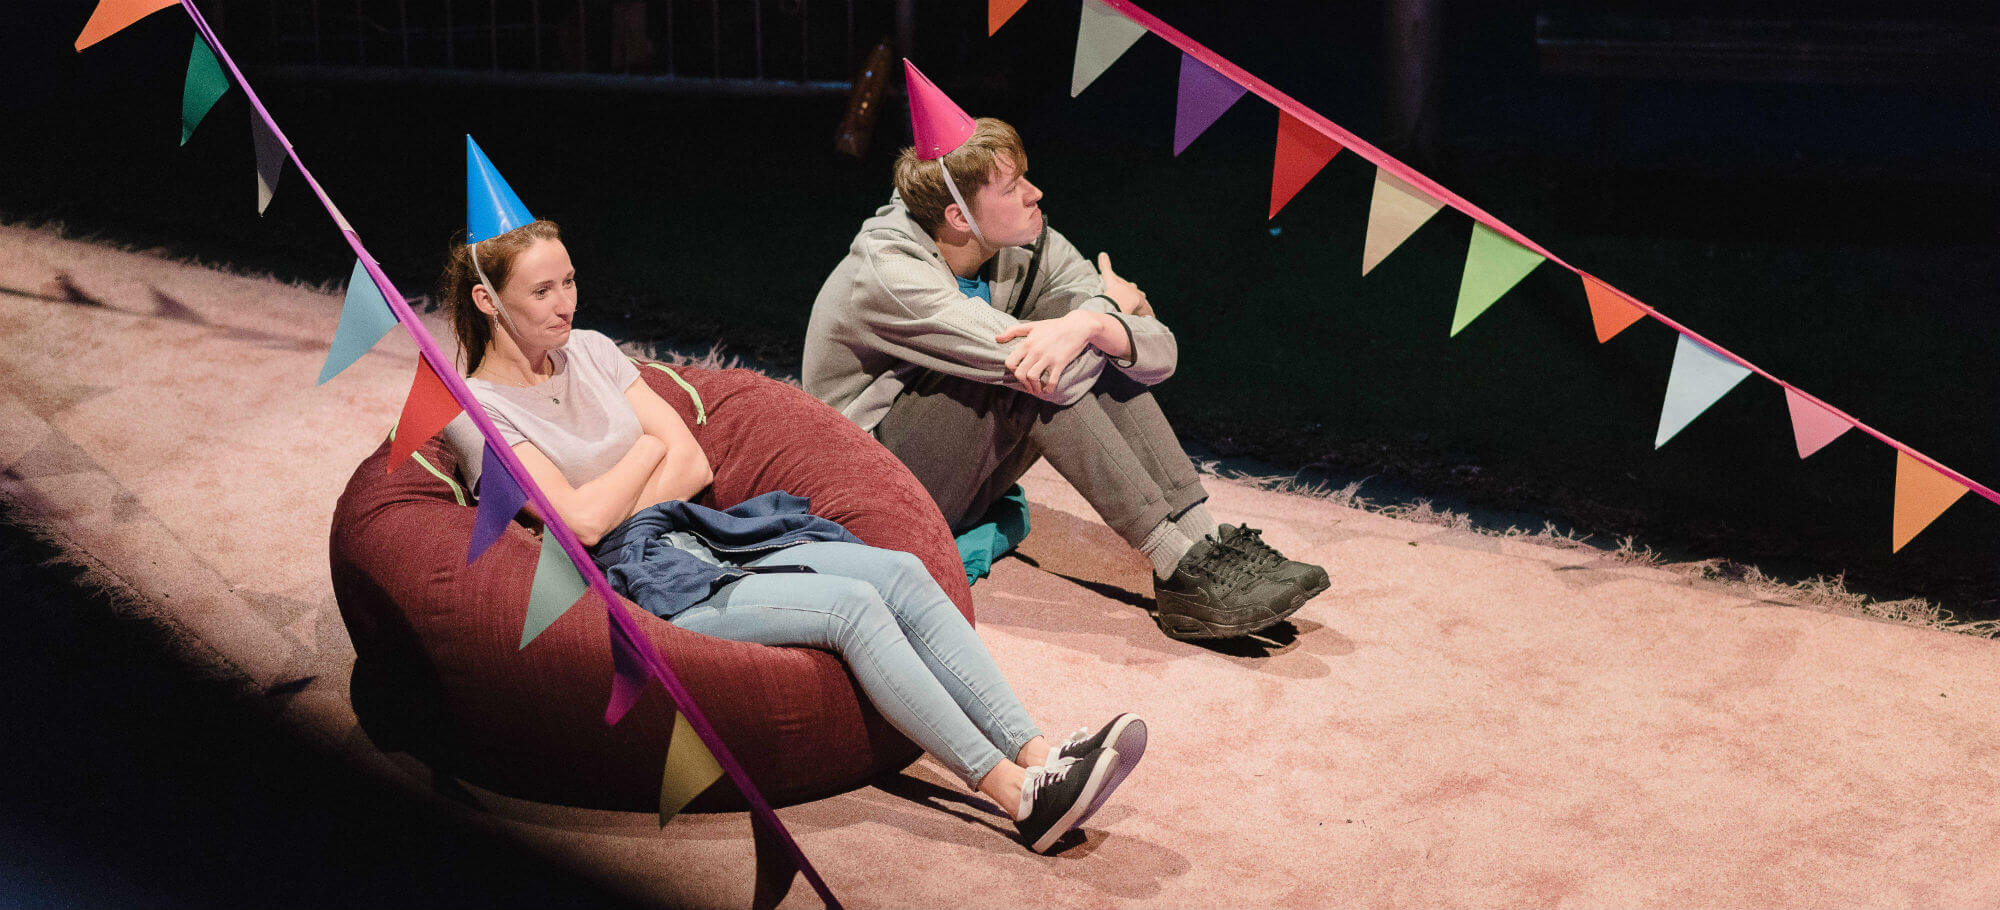 Two teenagers are sitting, one on a bean bag, one on the floor., between two garlands of colourful bunting. They are both wearing party hats and looking glum.